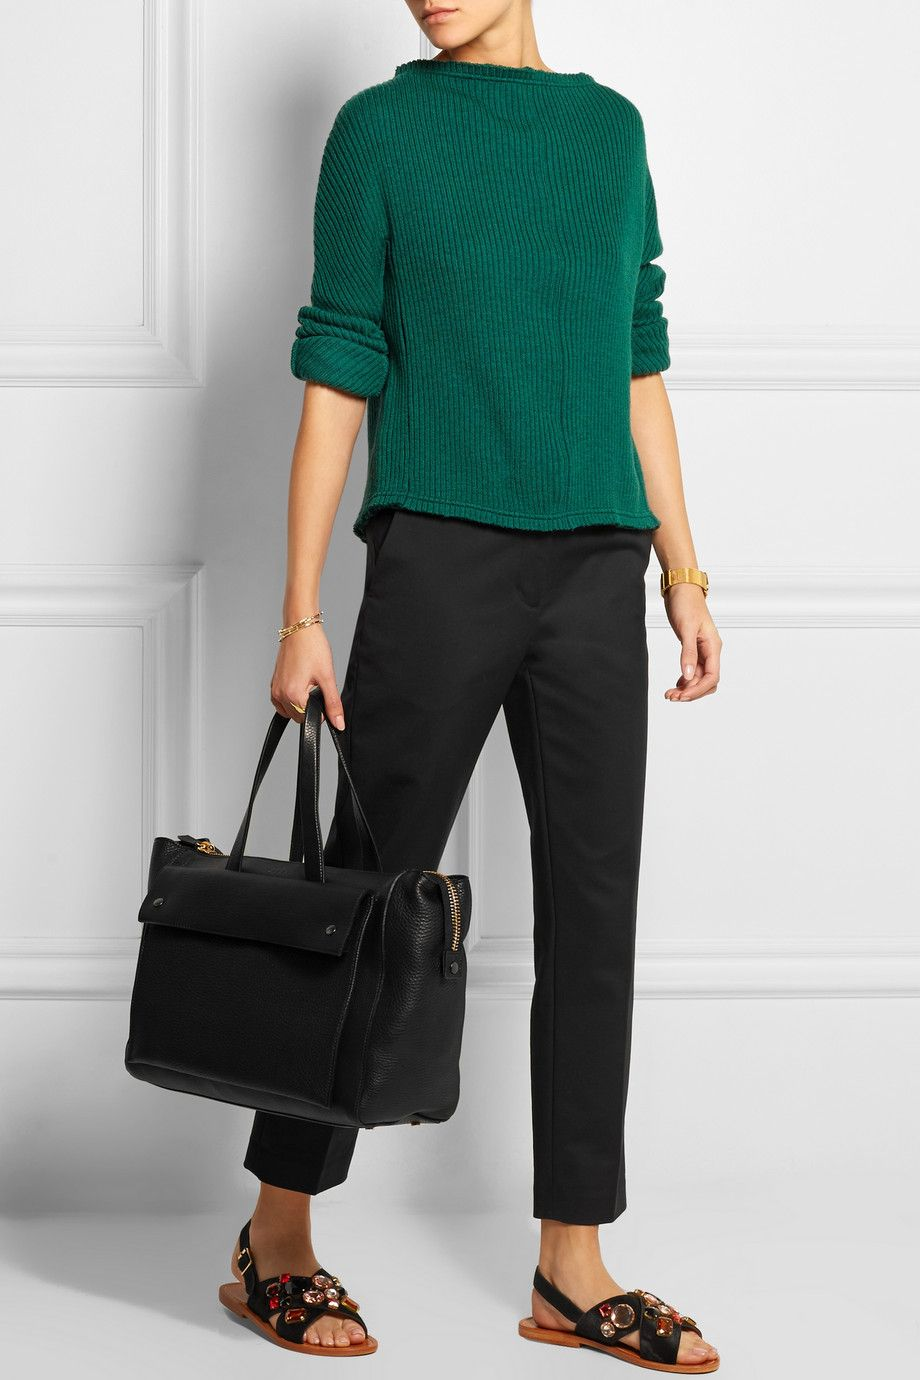 Marni | City large textured-leather bag | NET-A-PORTER.COM